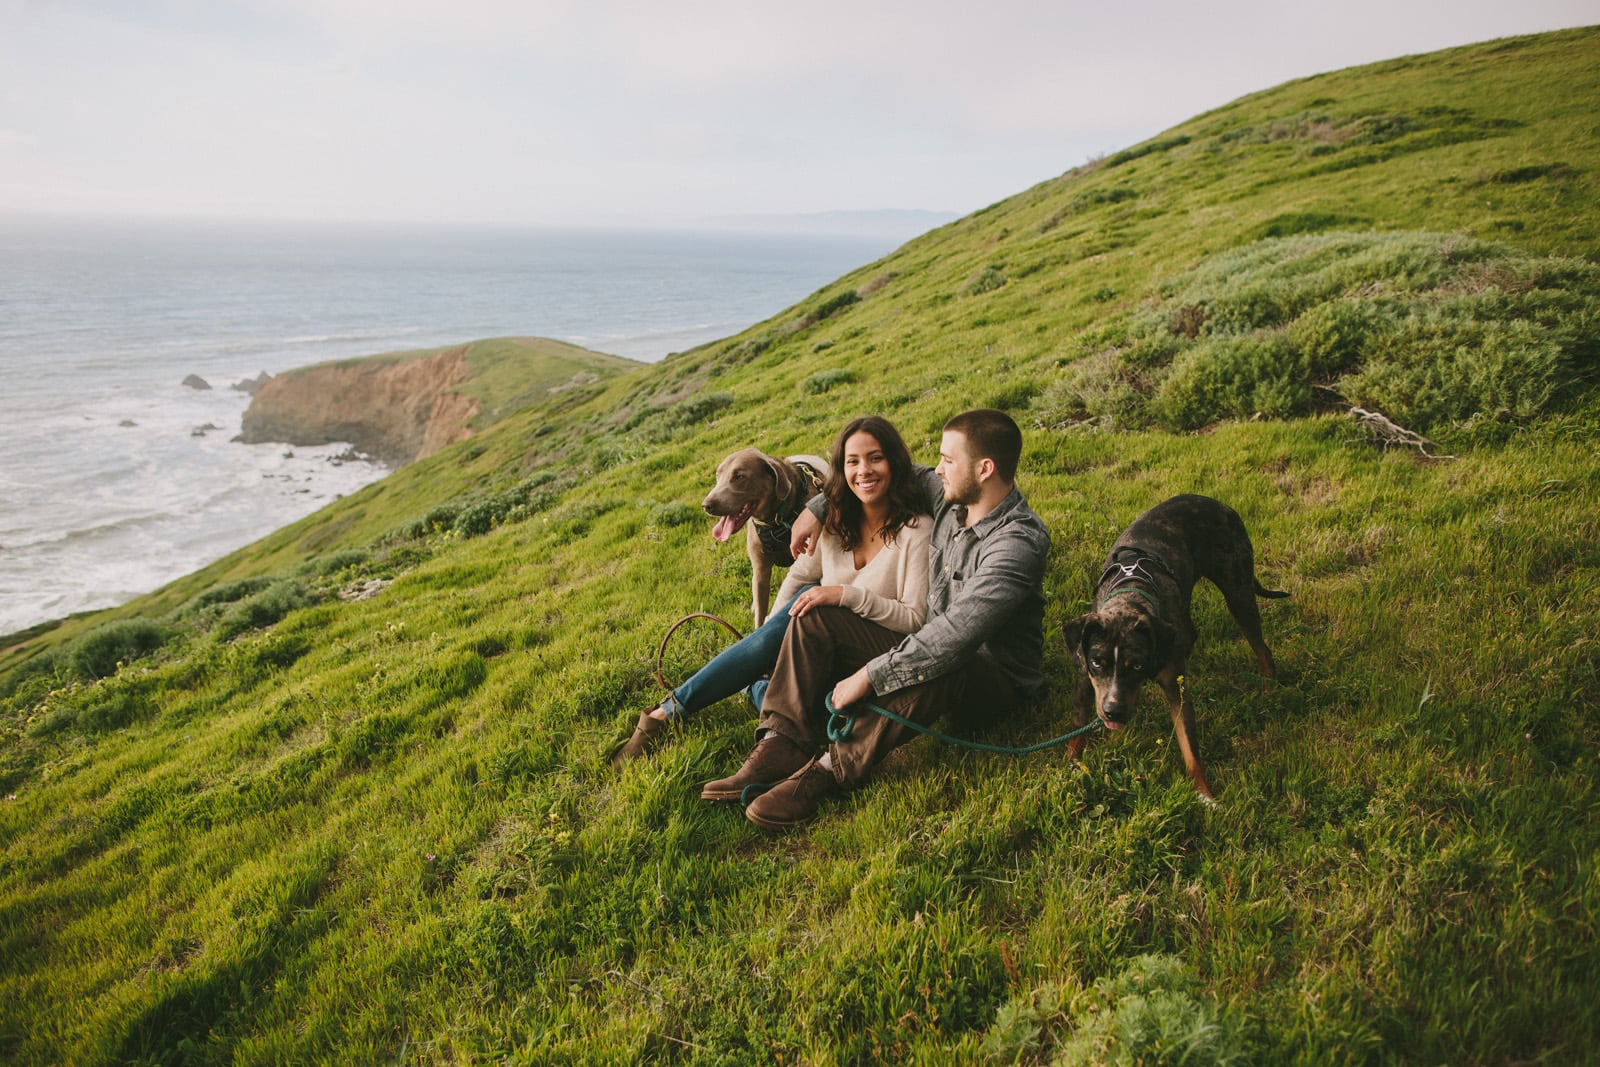 San_Francisco_Engagment_Session_Beach_Engagment_Session_007